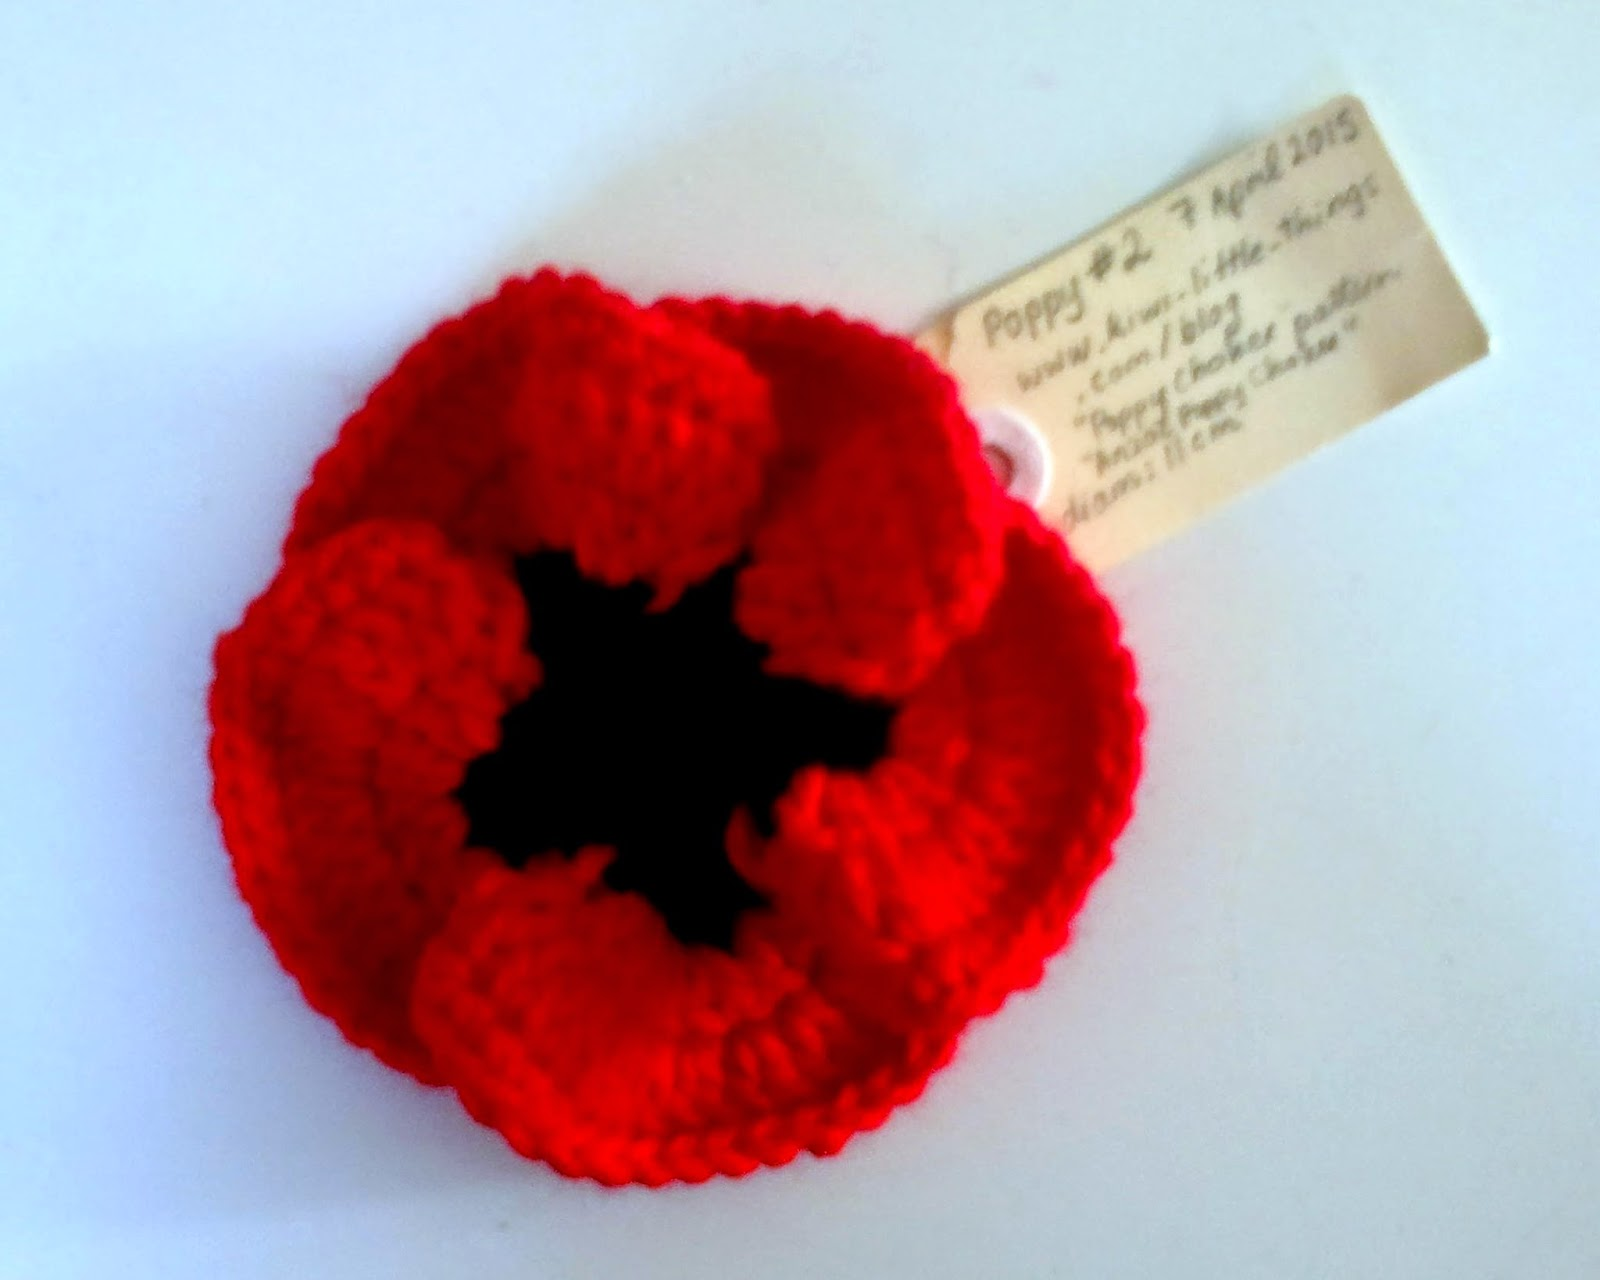 Red rosette style poppy with star-shaped black centre. The curved outer edges naturally overlap each other to resemble 5 petals.